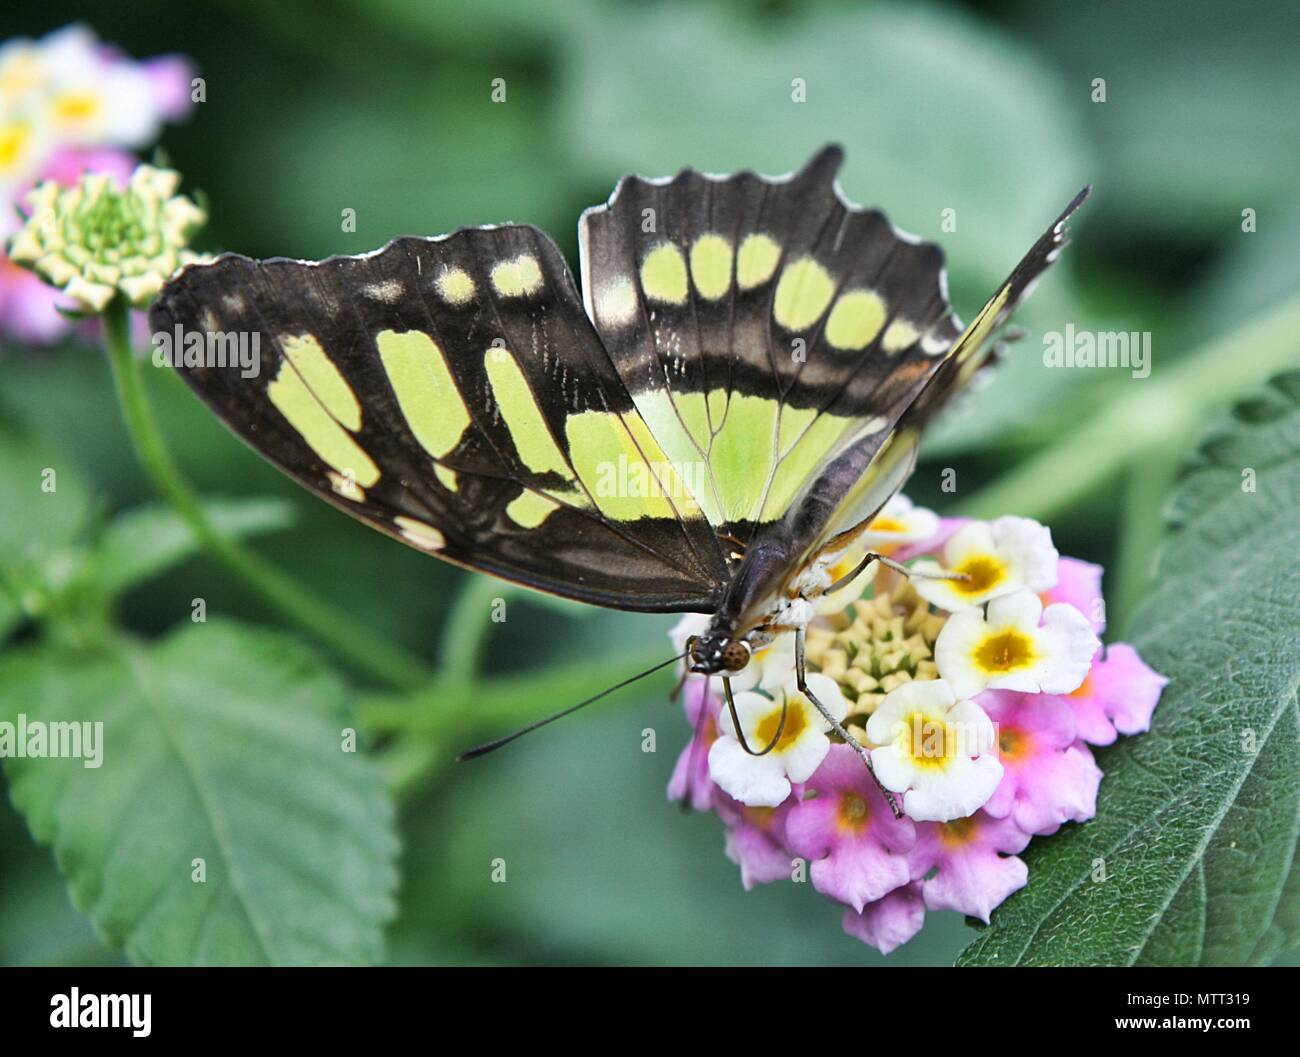 The Malachite Siproeta Stelenes Butterfly - Stock Image